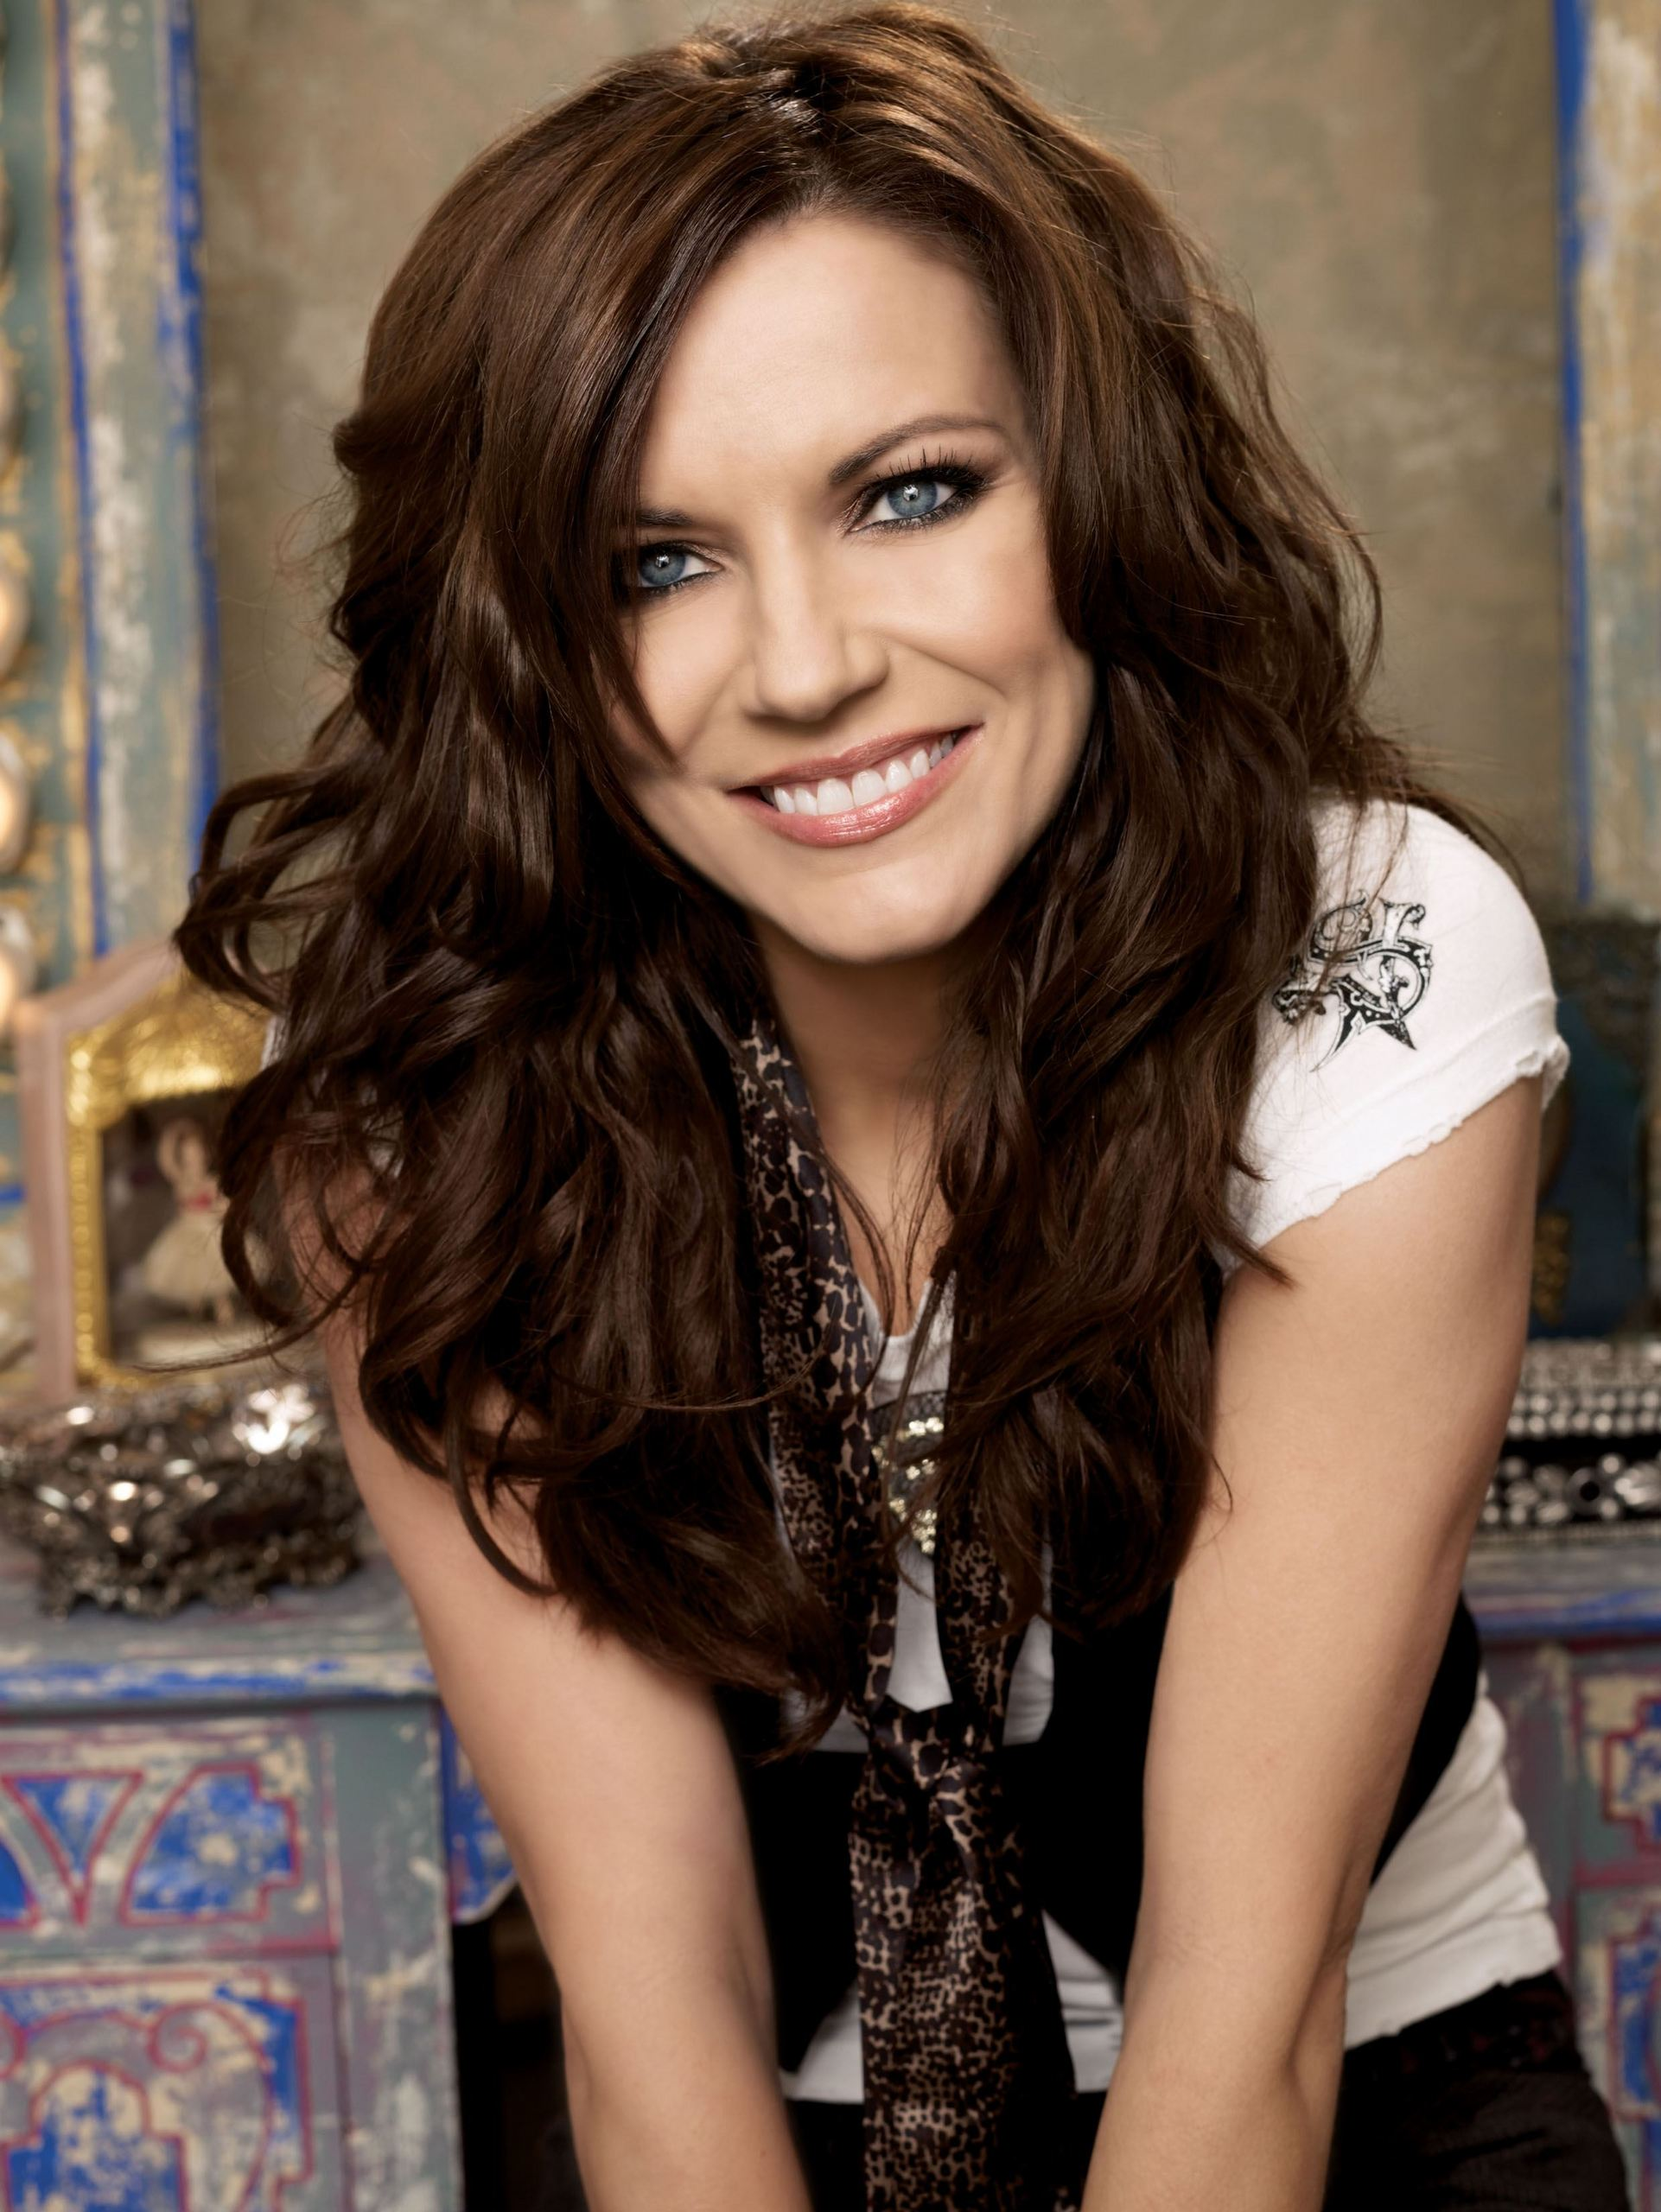 Martina Mcbride Net Worth